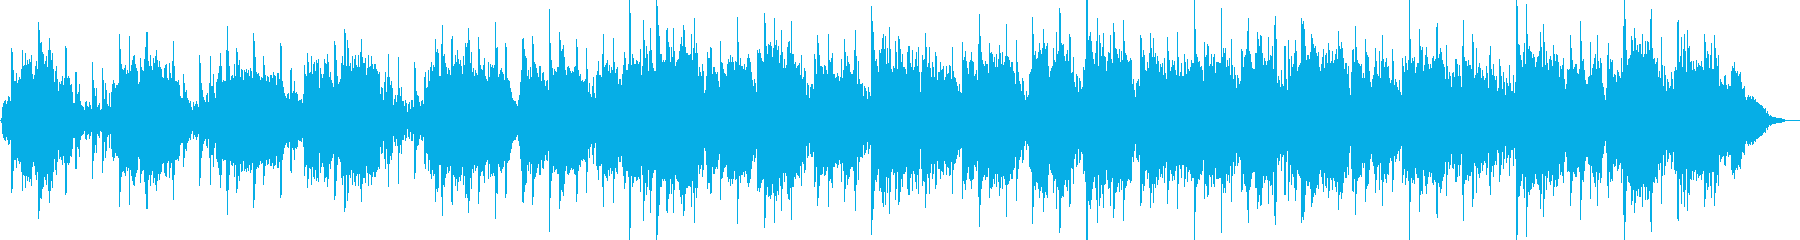 Quena and synthesizer healing music's reproduced waveform